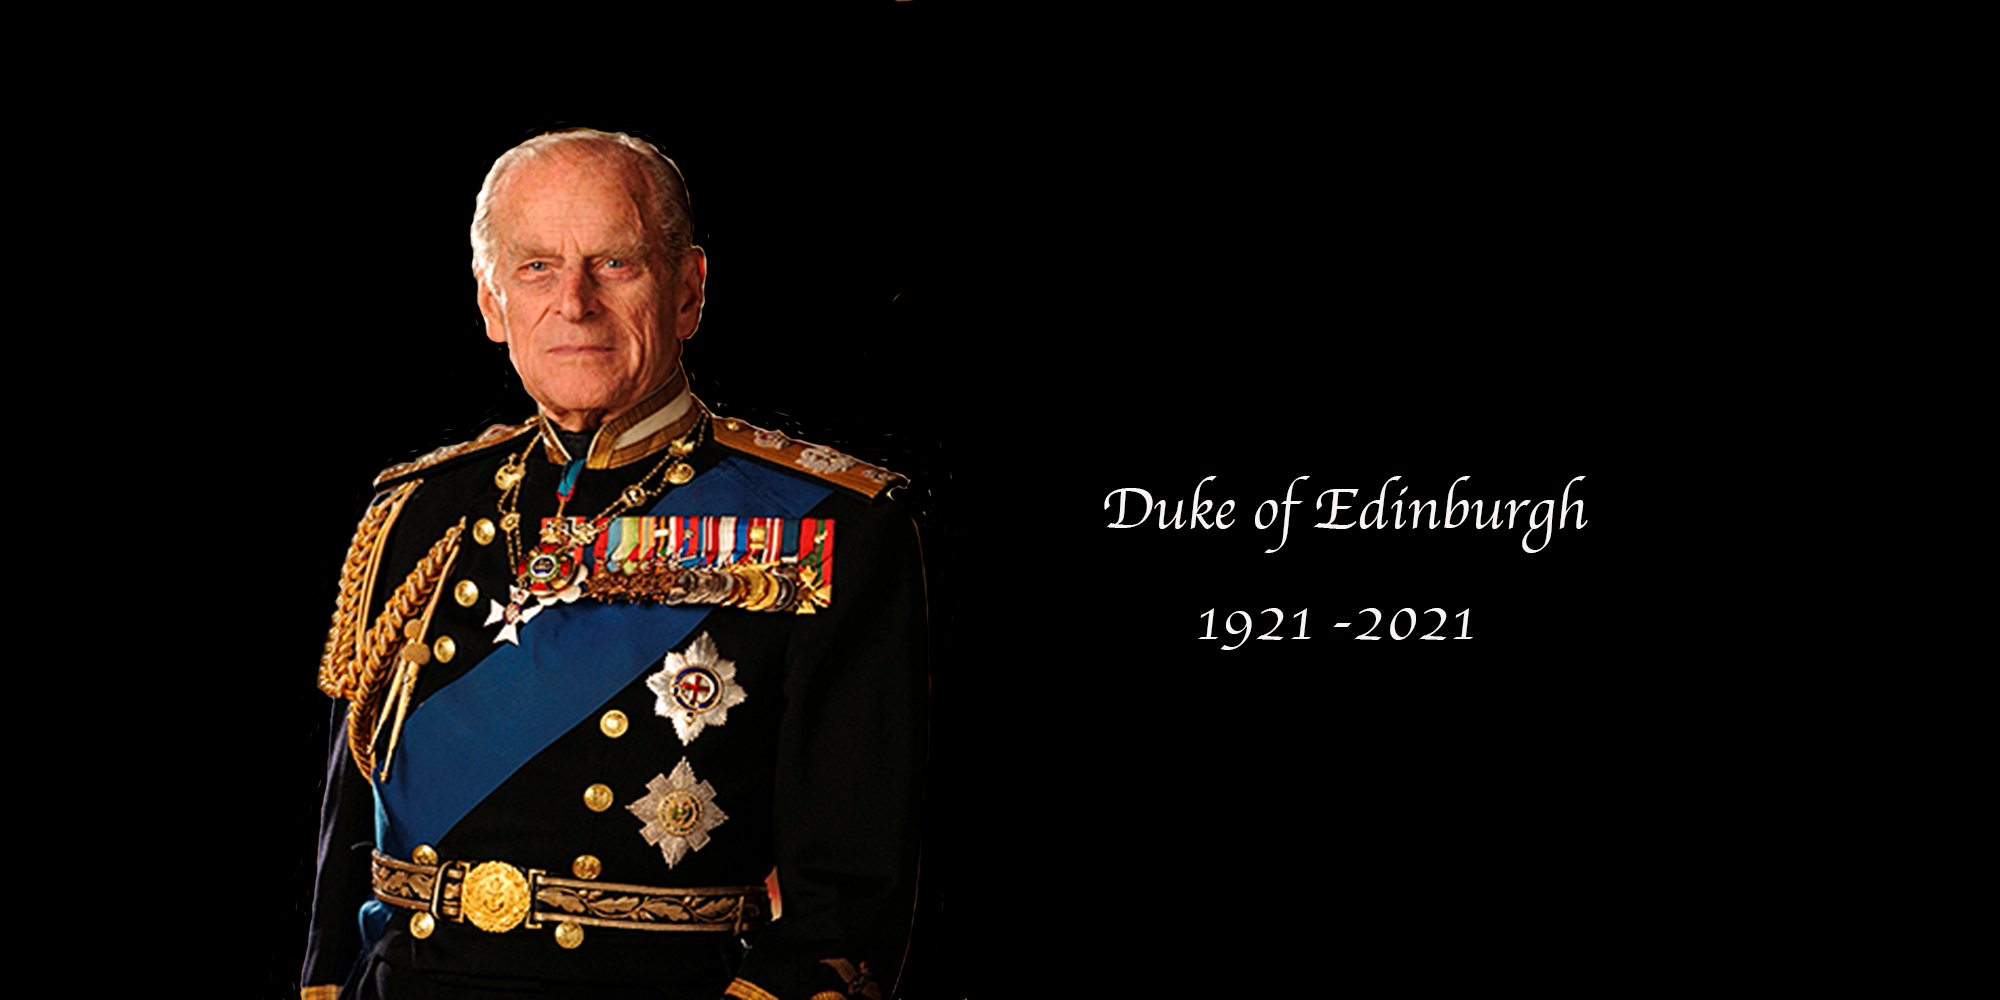 Tribute to HRH The Duke of Edinburgh